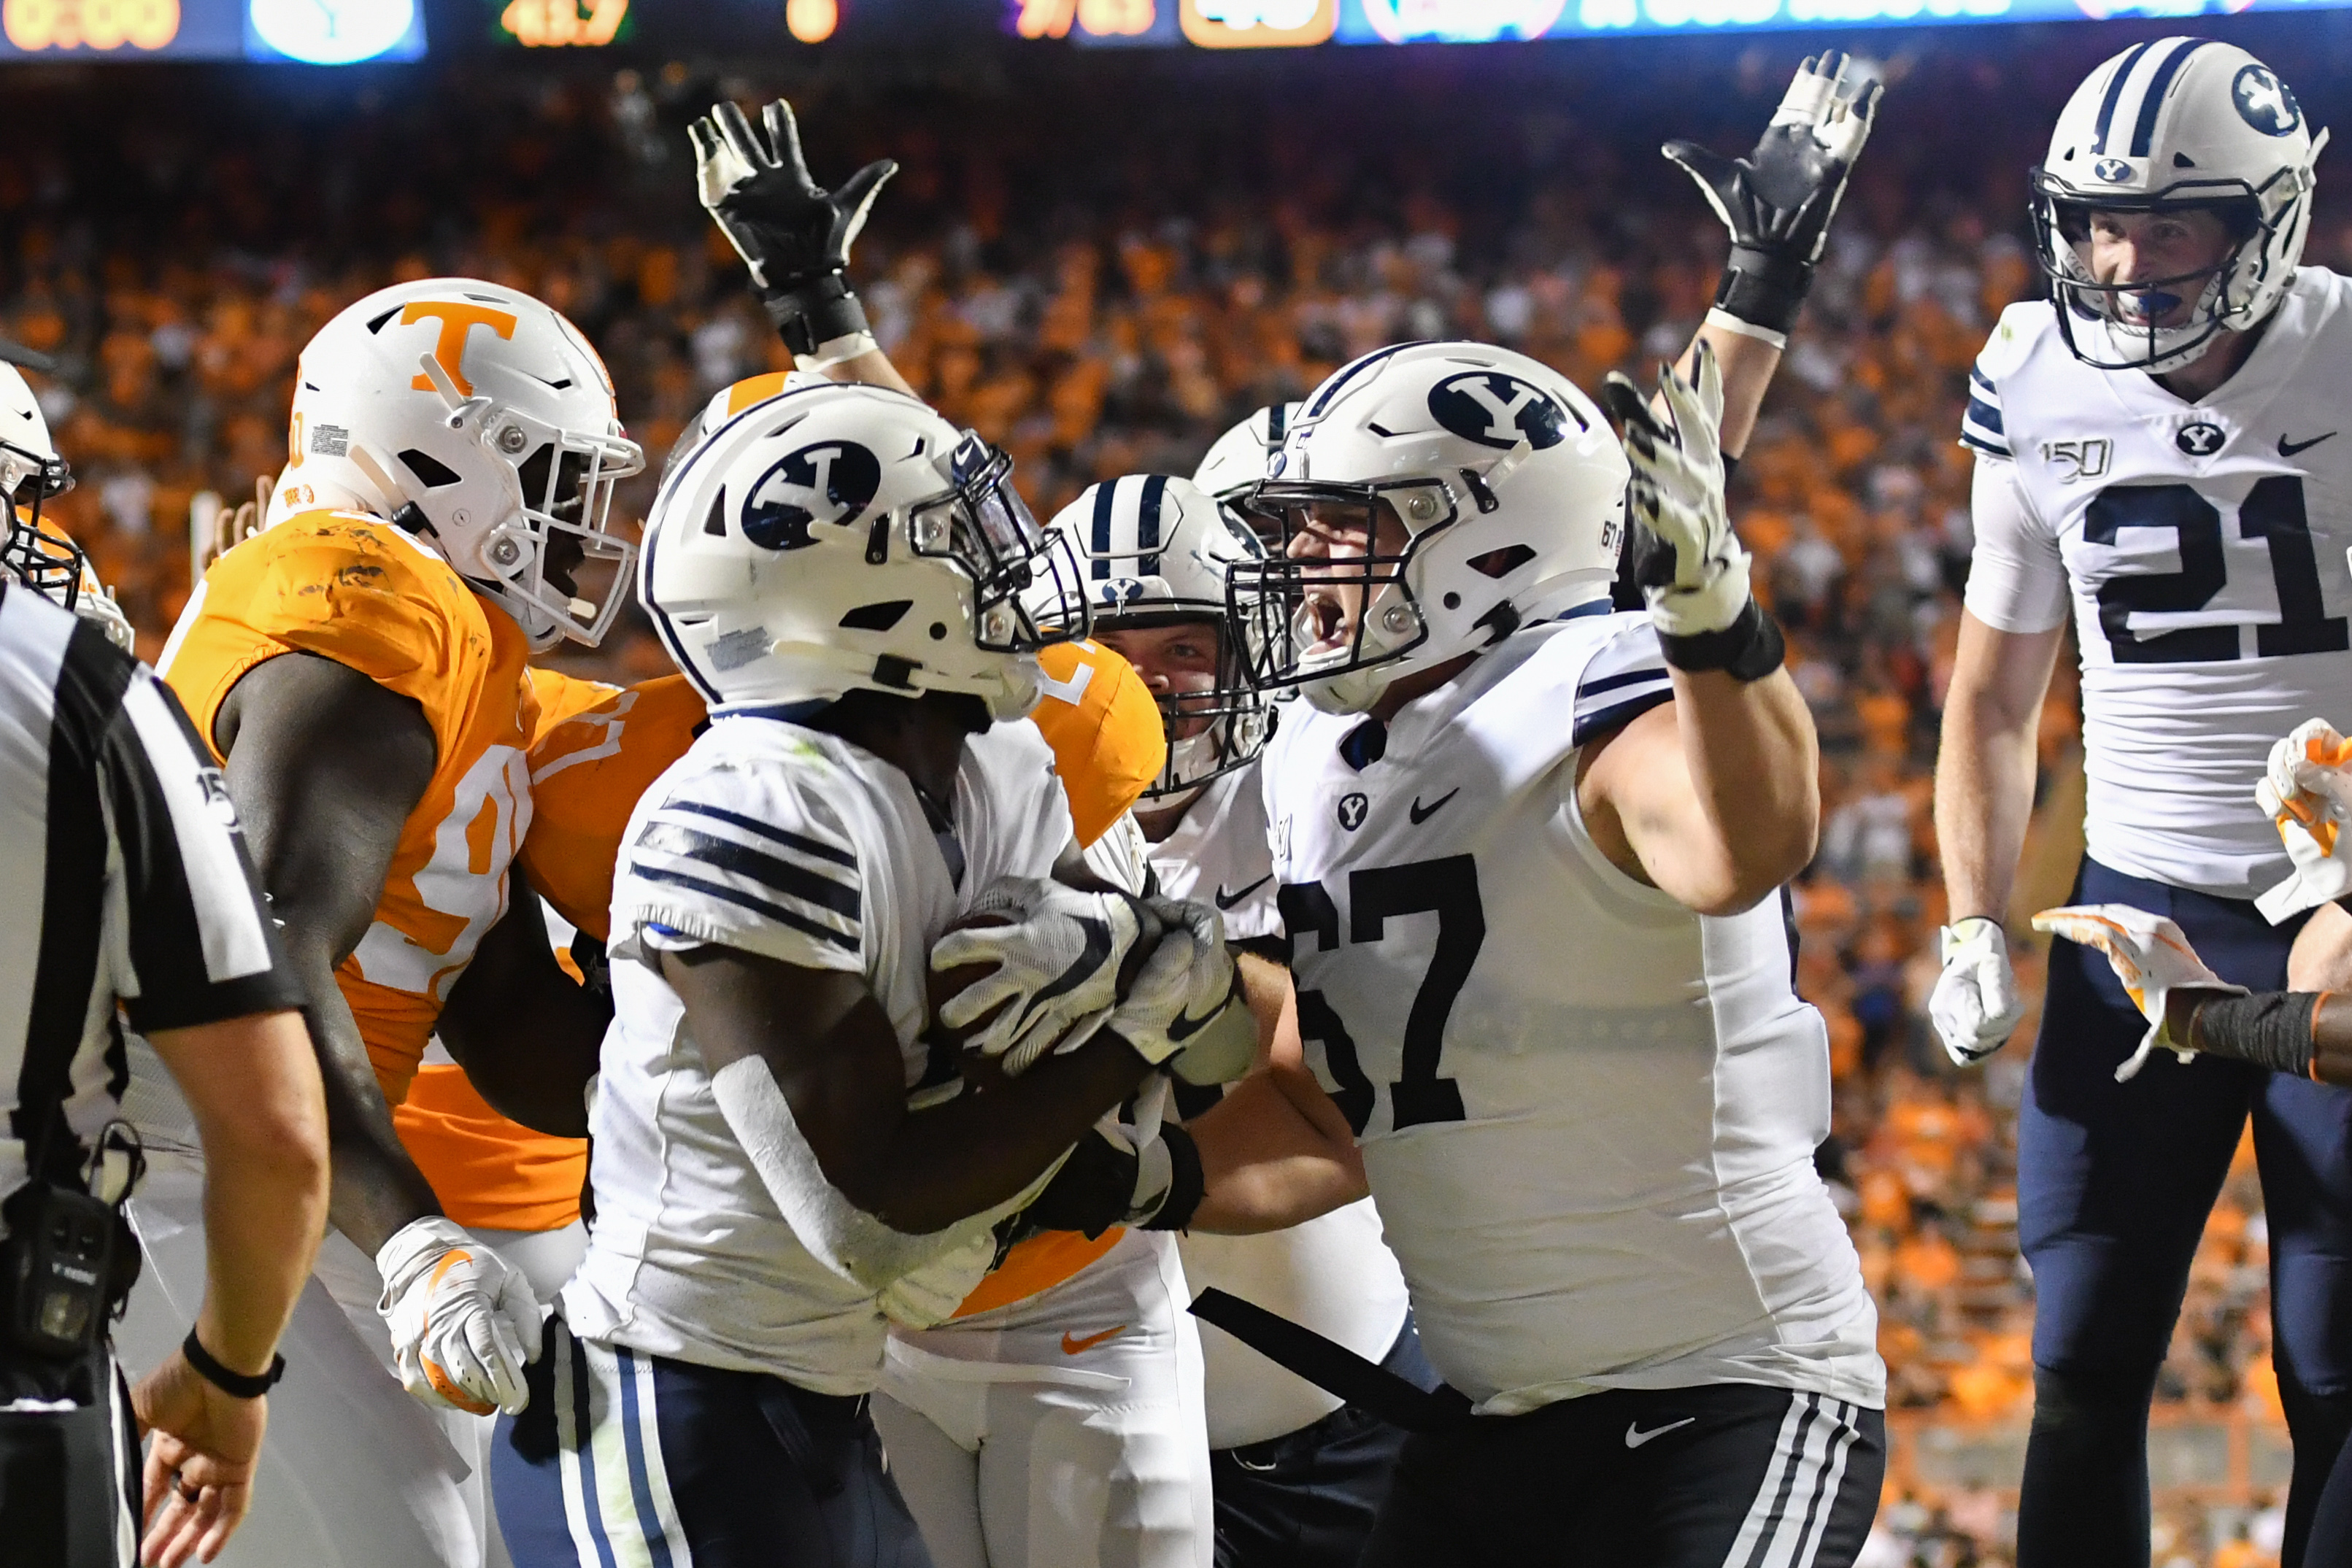 NCAA Football: Brigham Young at Tennessee